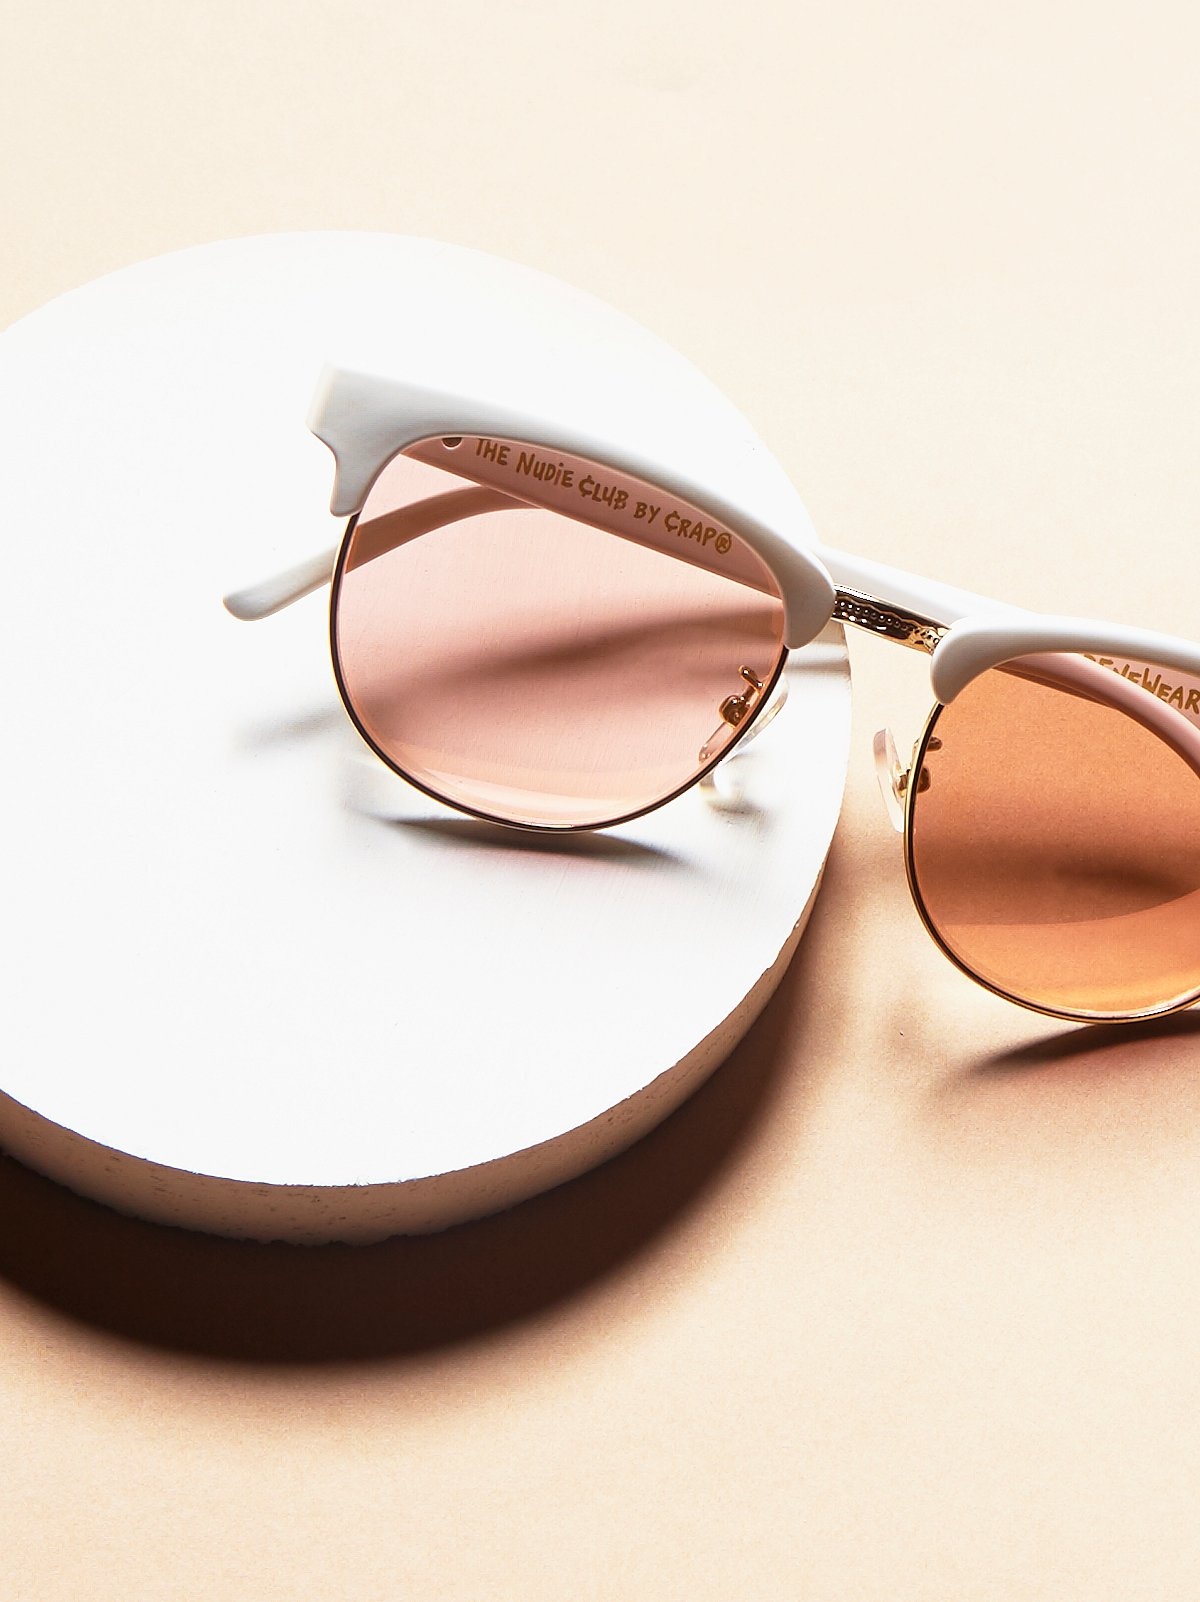 Nudie Club Sunglasses